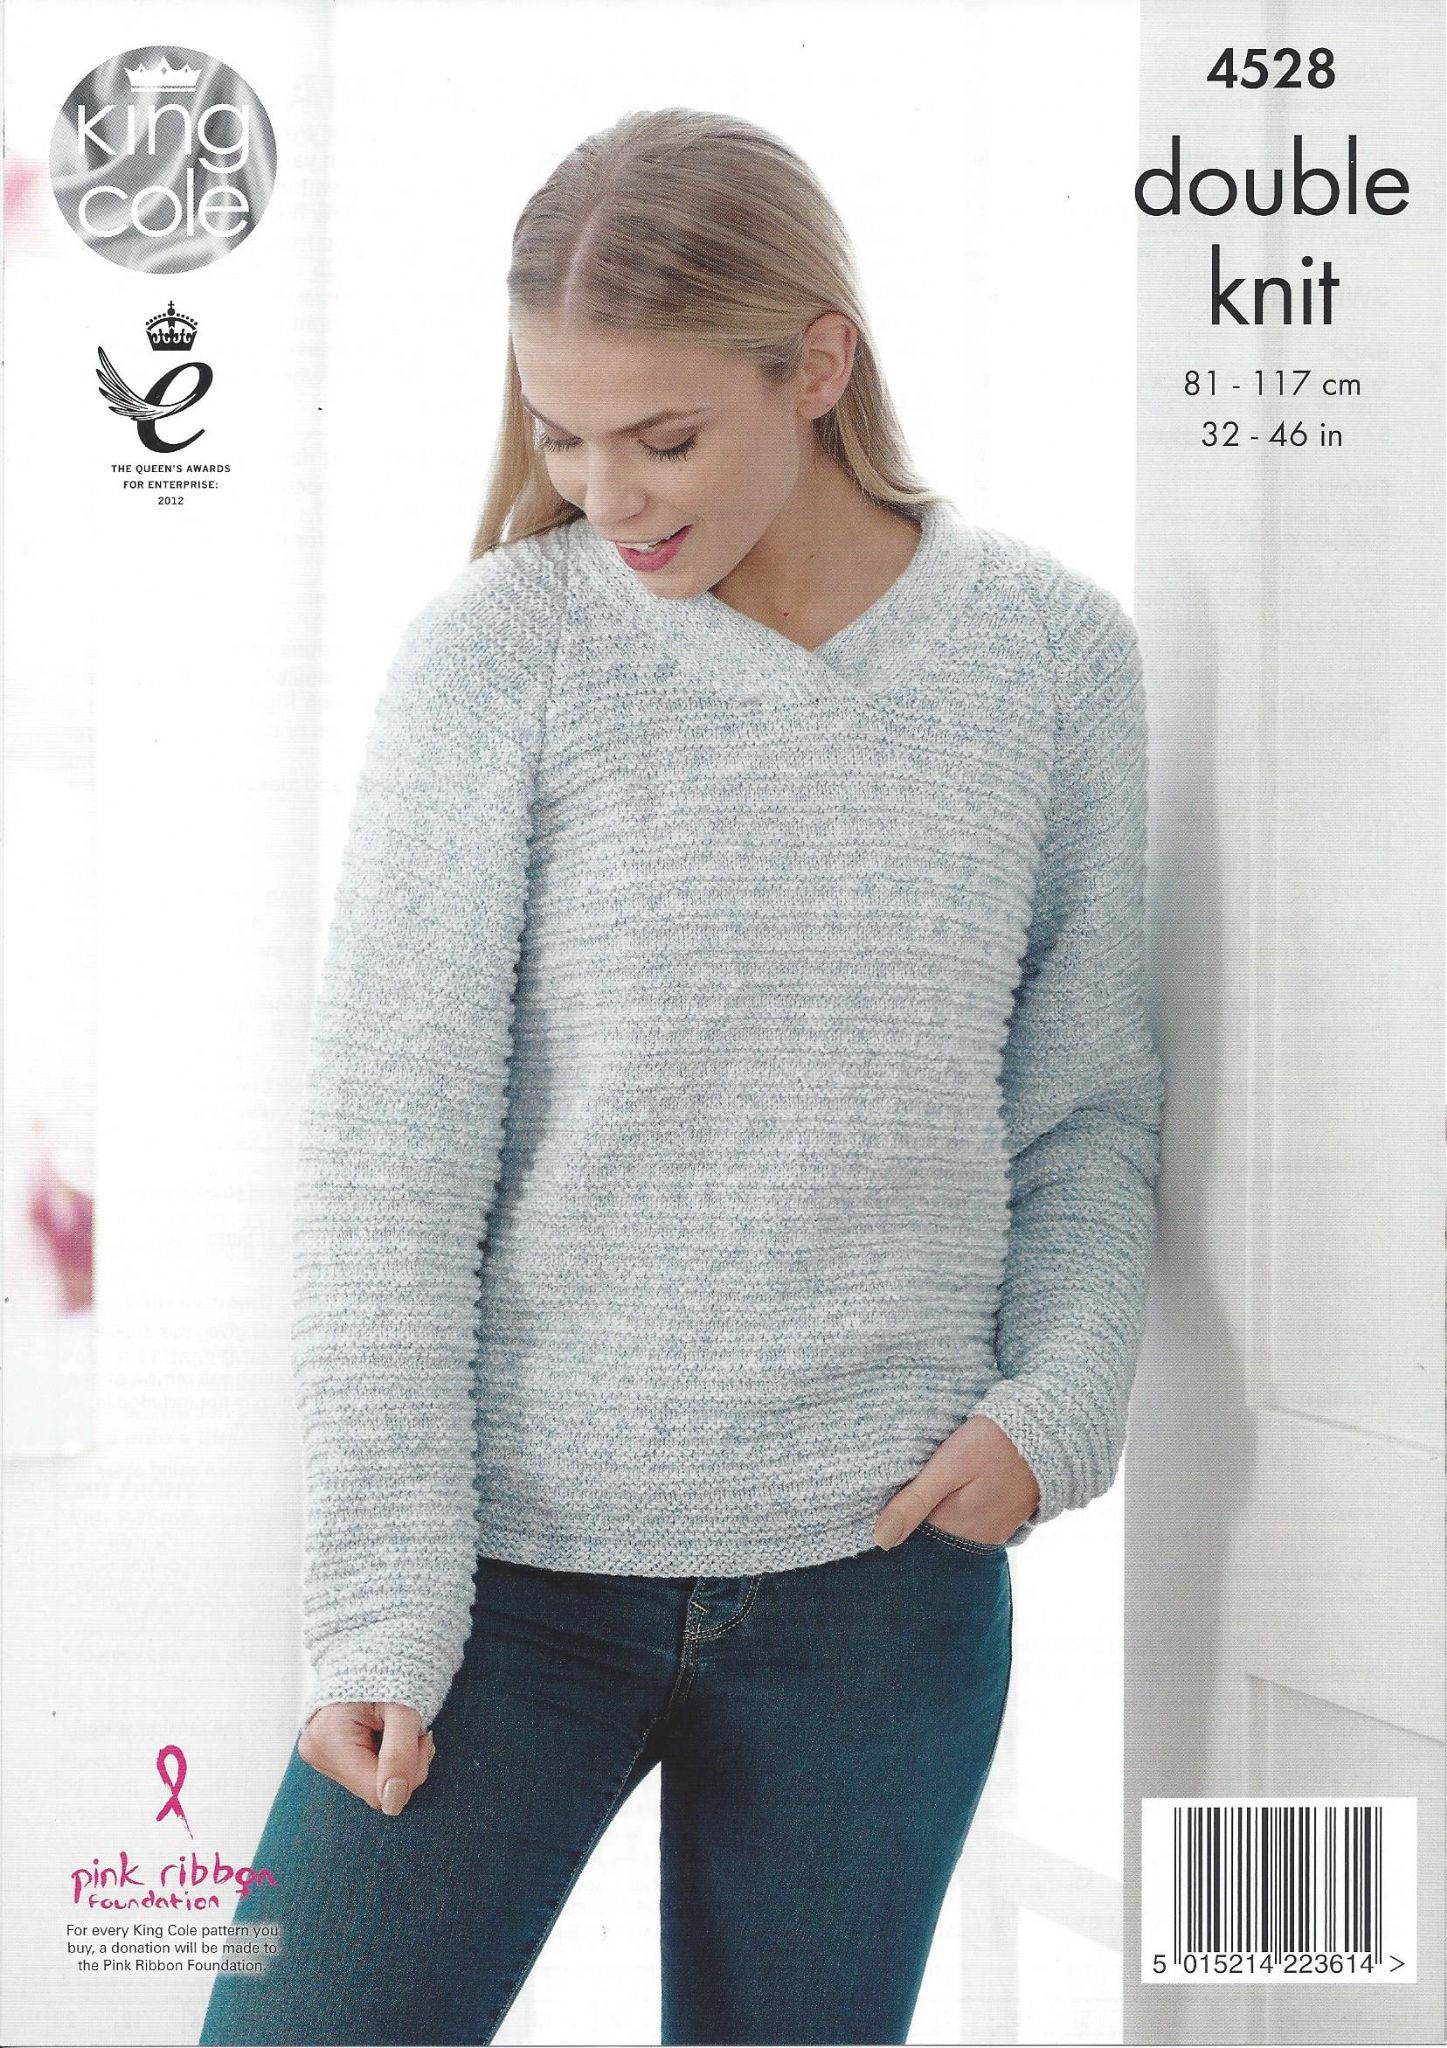 King Cole DK - 4528 Cardigan & Sweater Knitting Pattern